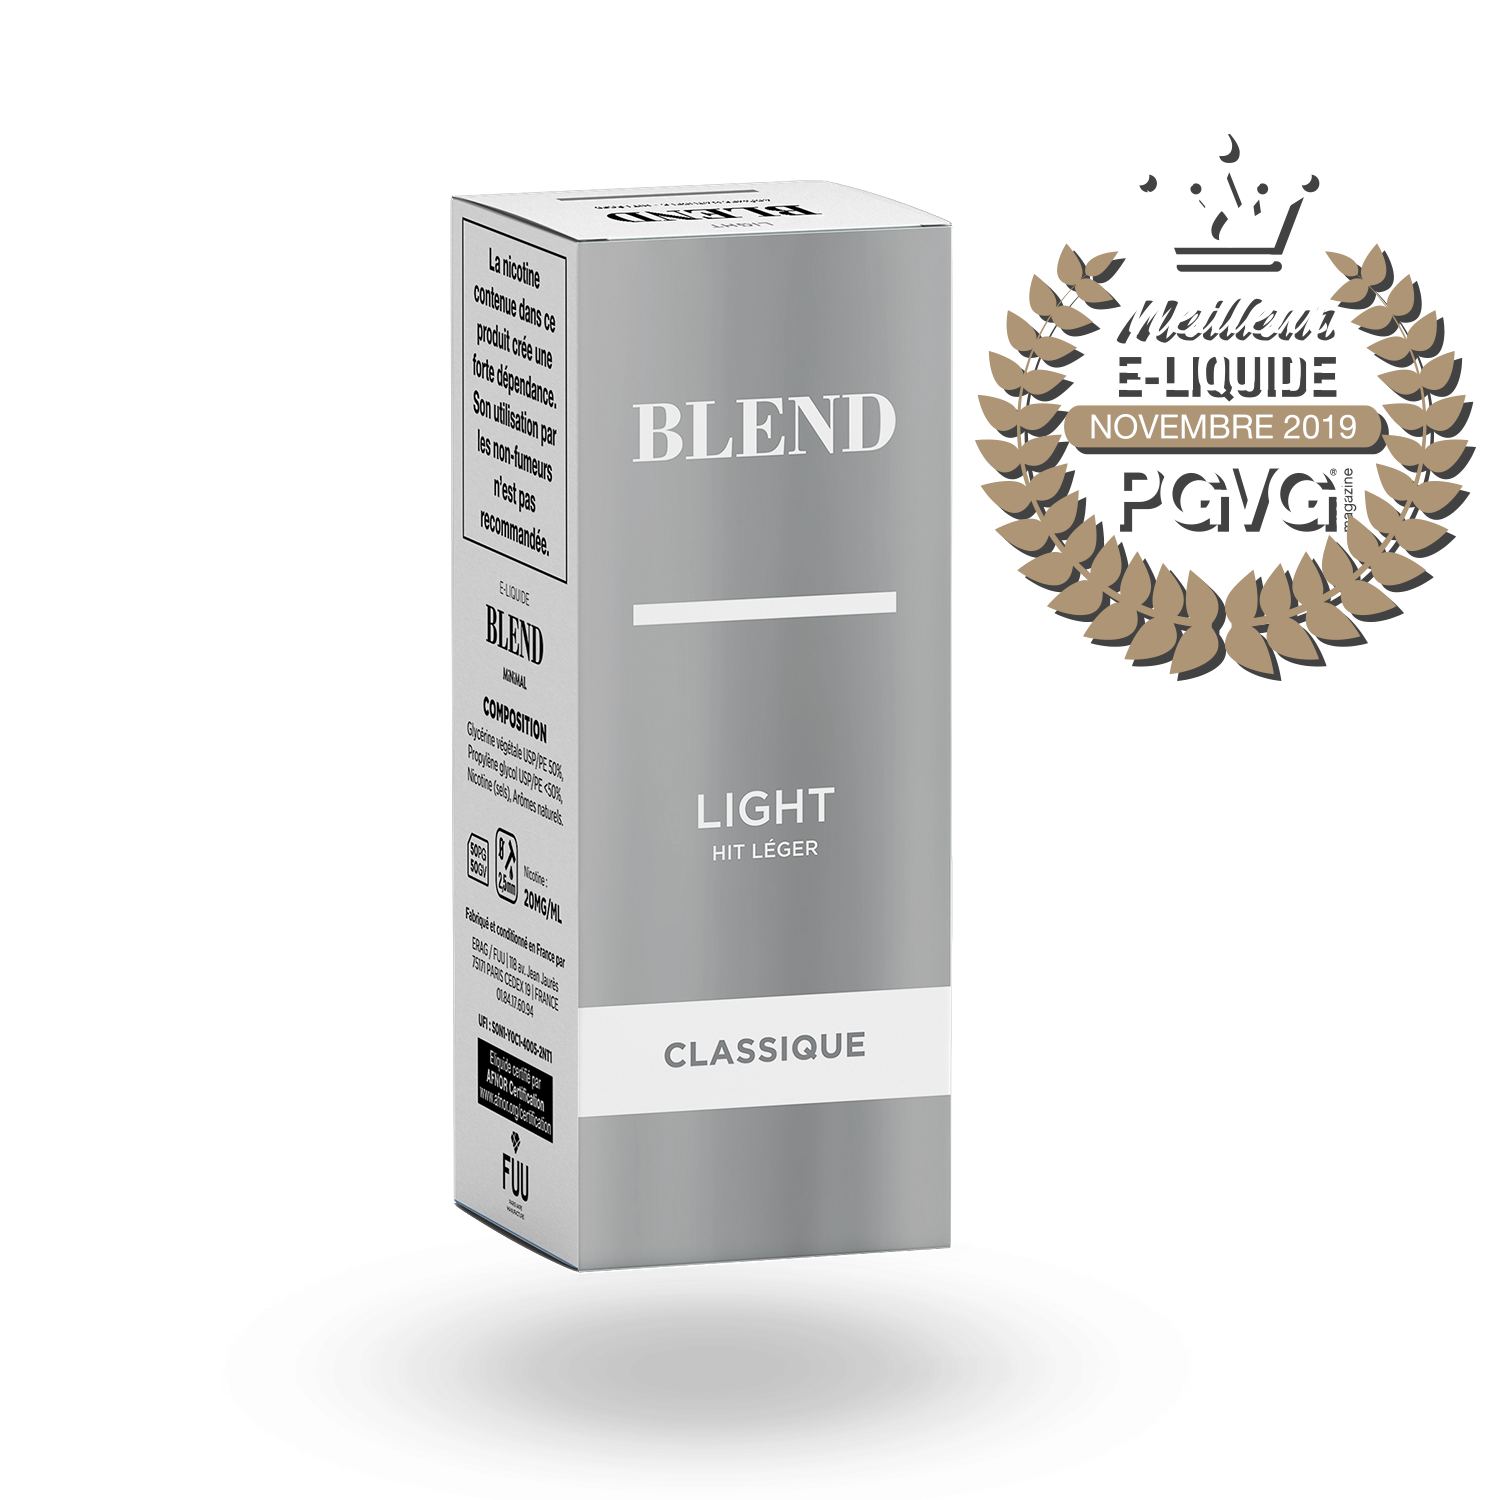 BLEND - Light